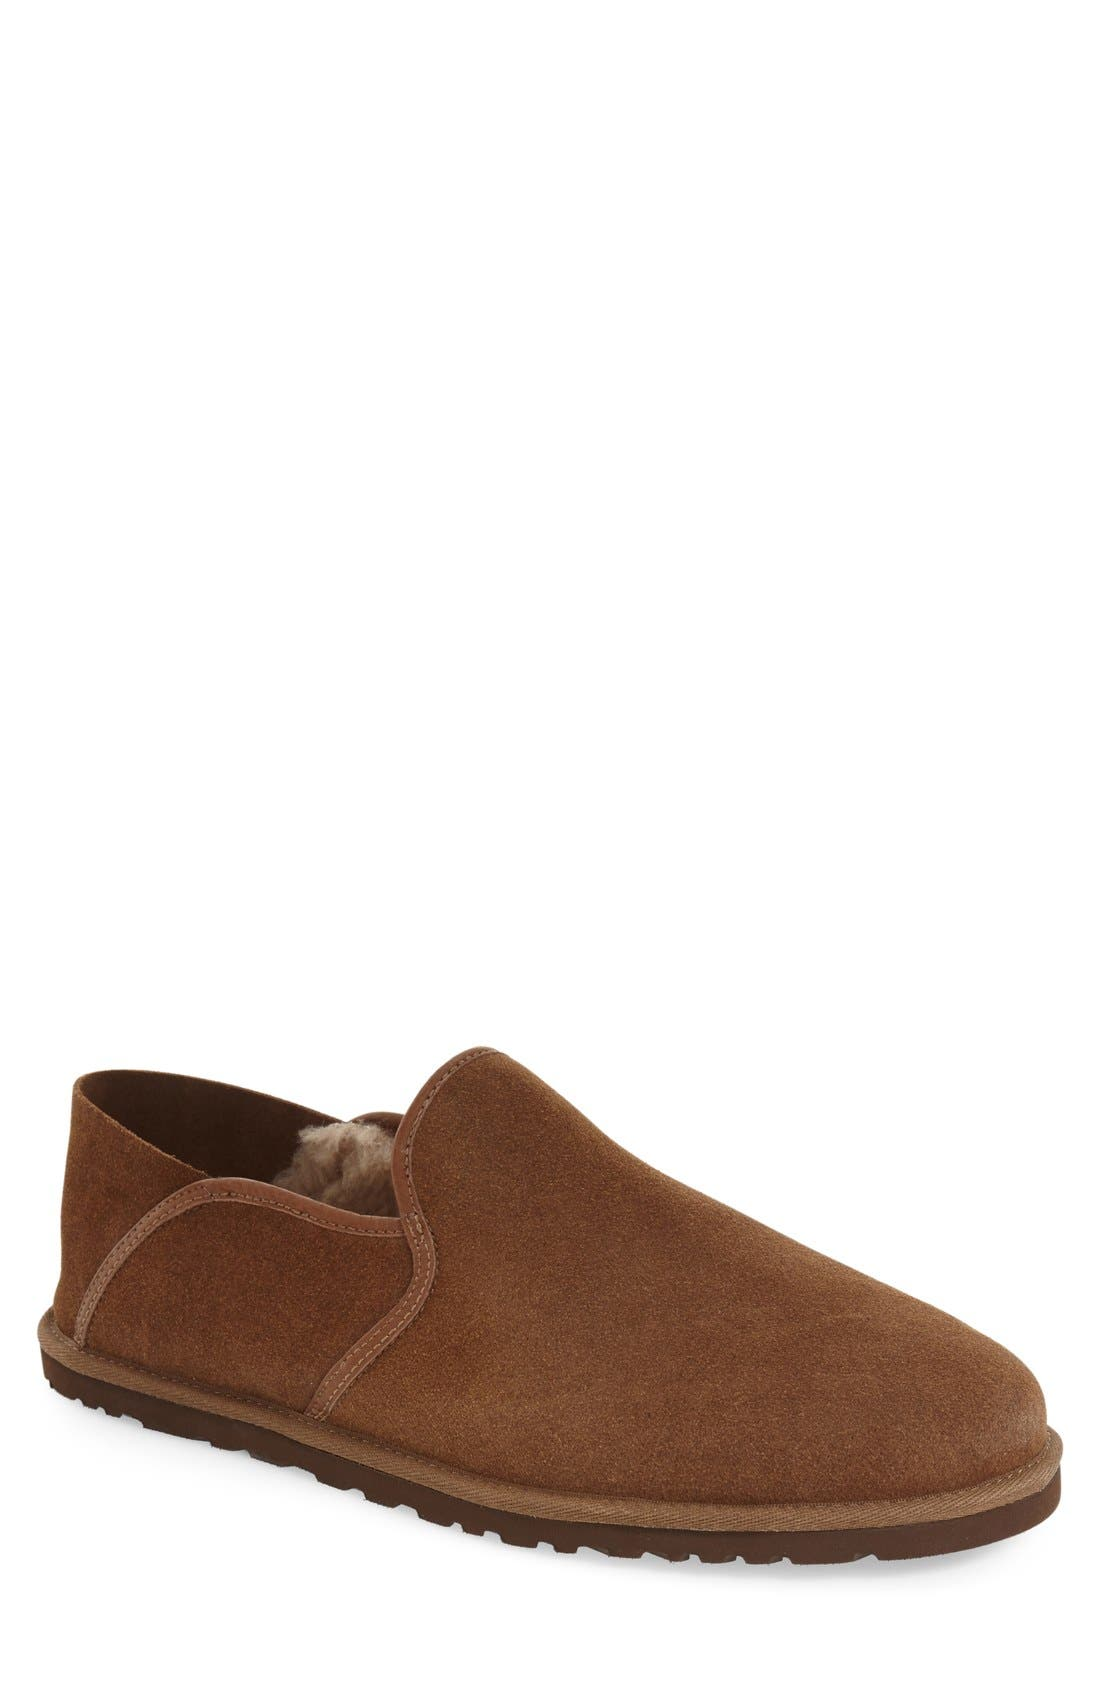 Alternate Image 1 Selected - UGG® Cooke Slipper (Men)